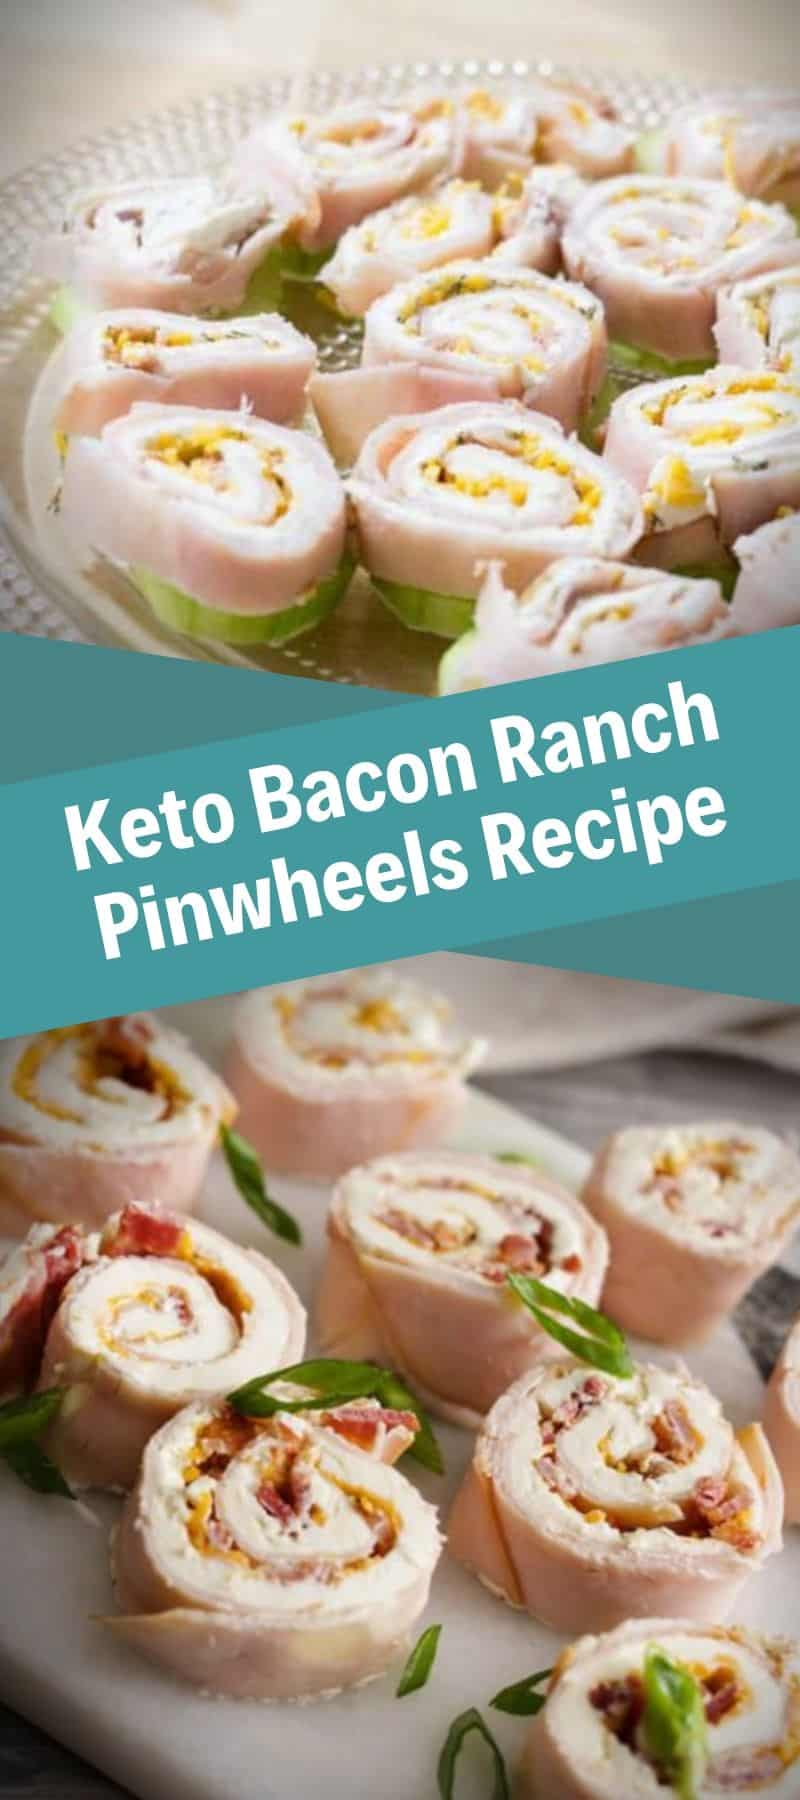 Keto Bacon Ranch Pinwheels Recipe 3